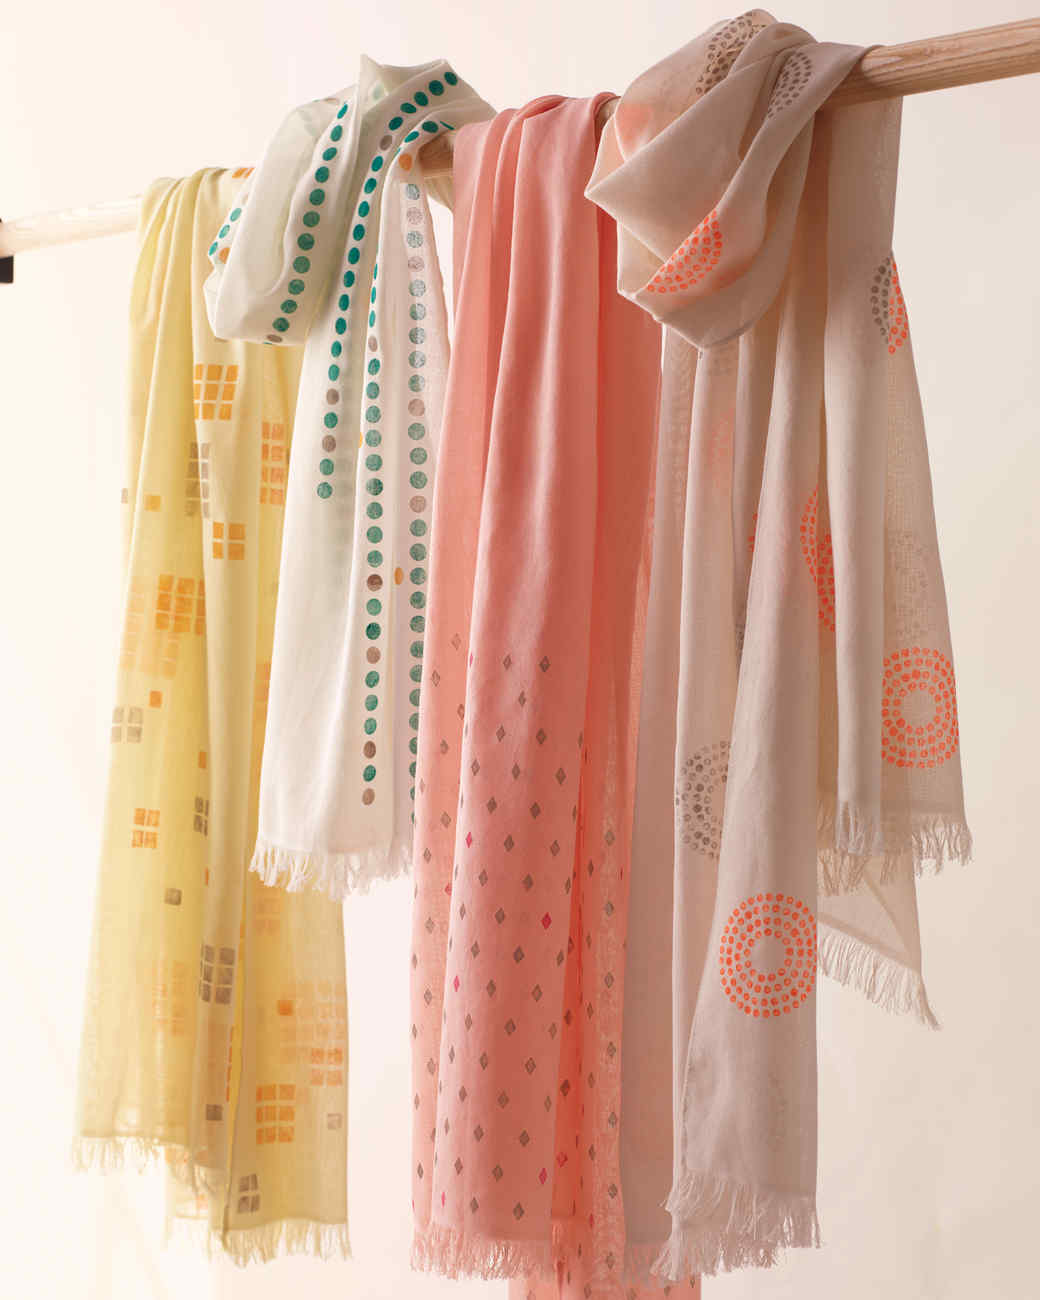 scarves-hanging-opt3-078-exp2-d112052.jpg